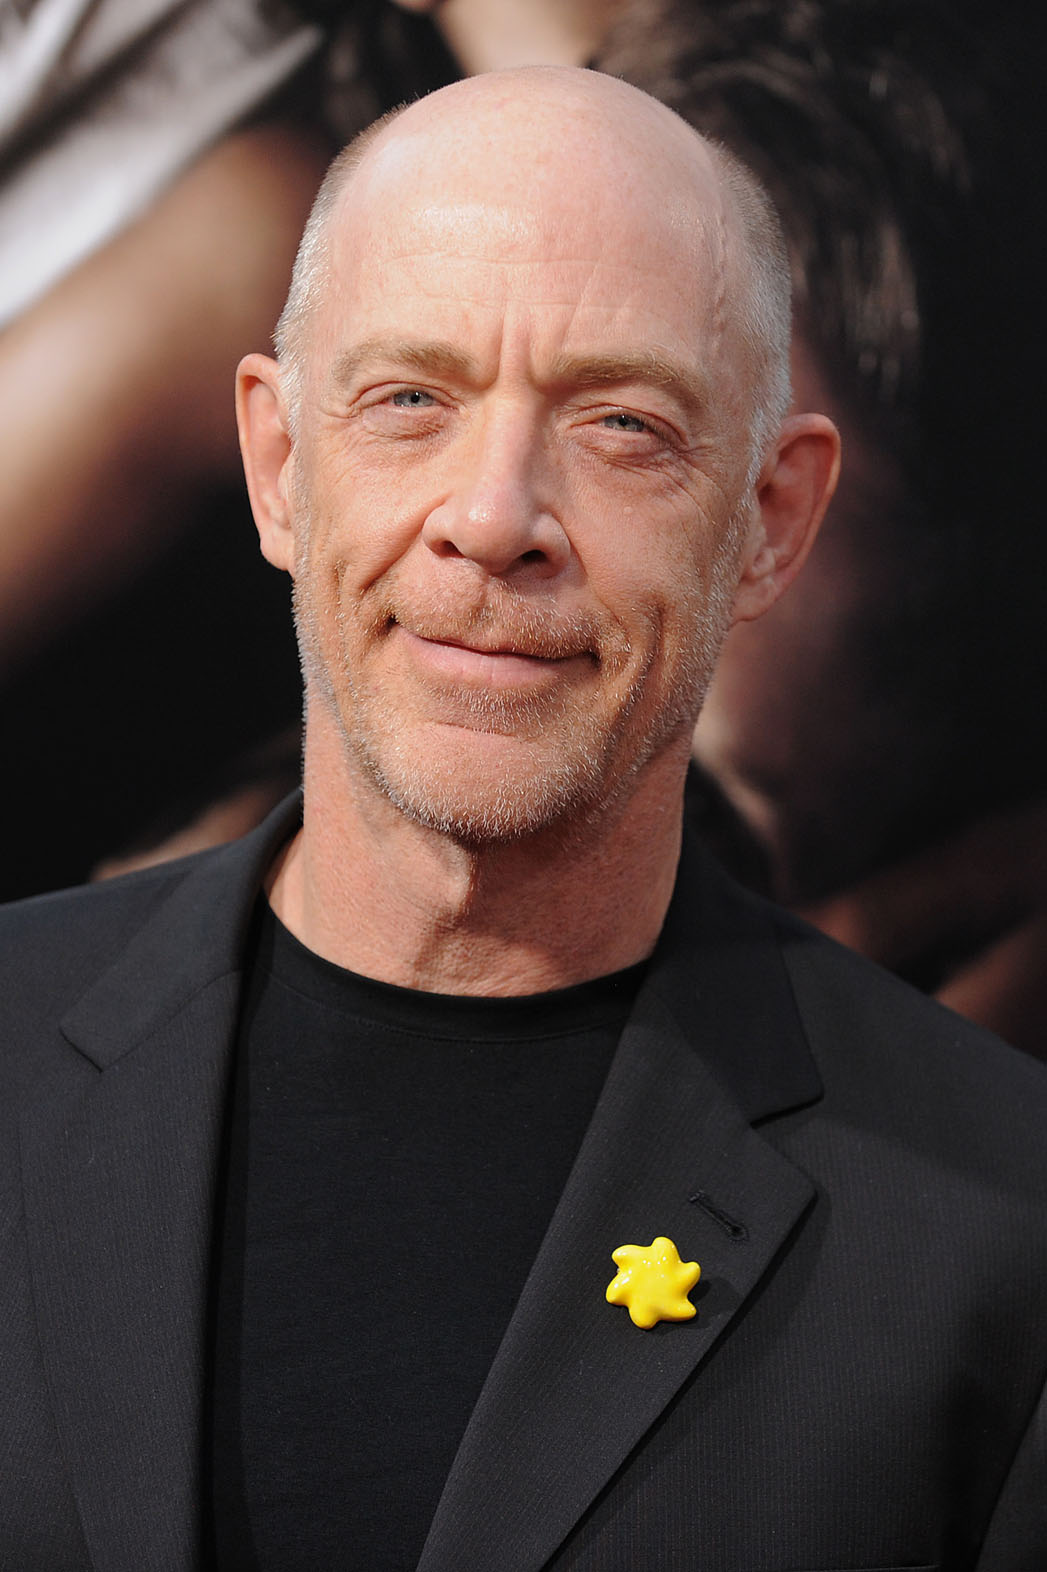 J.K. Simmons Headshot - P 2014